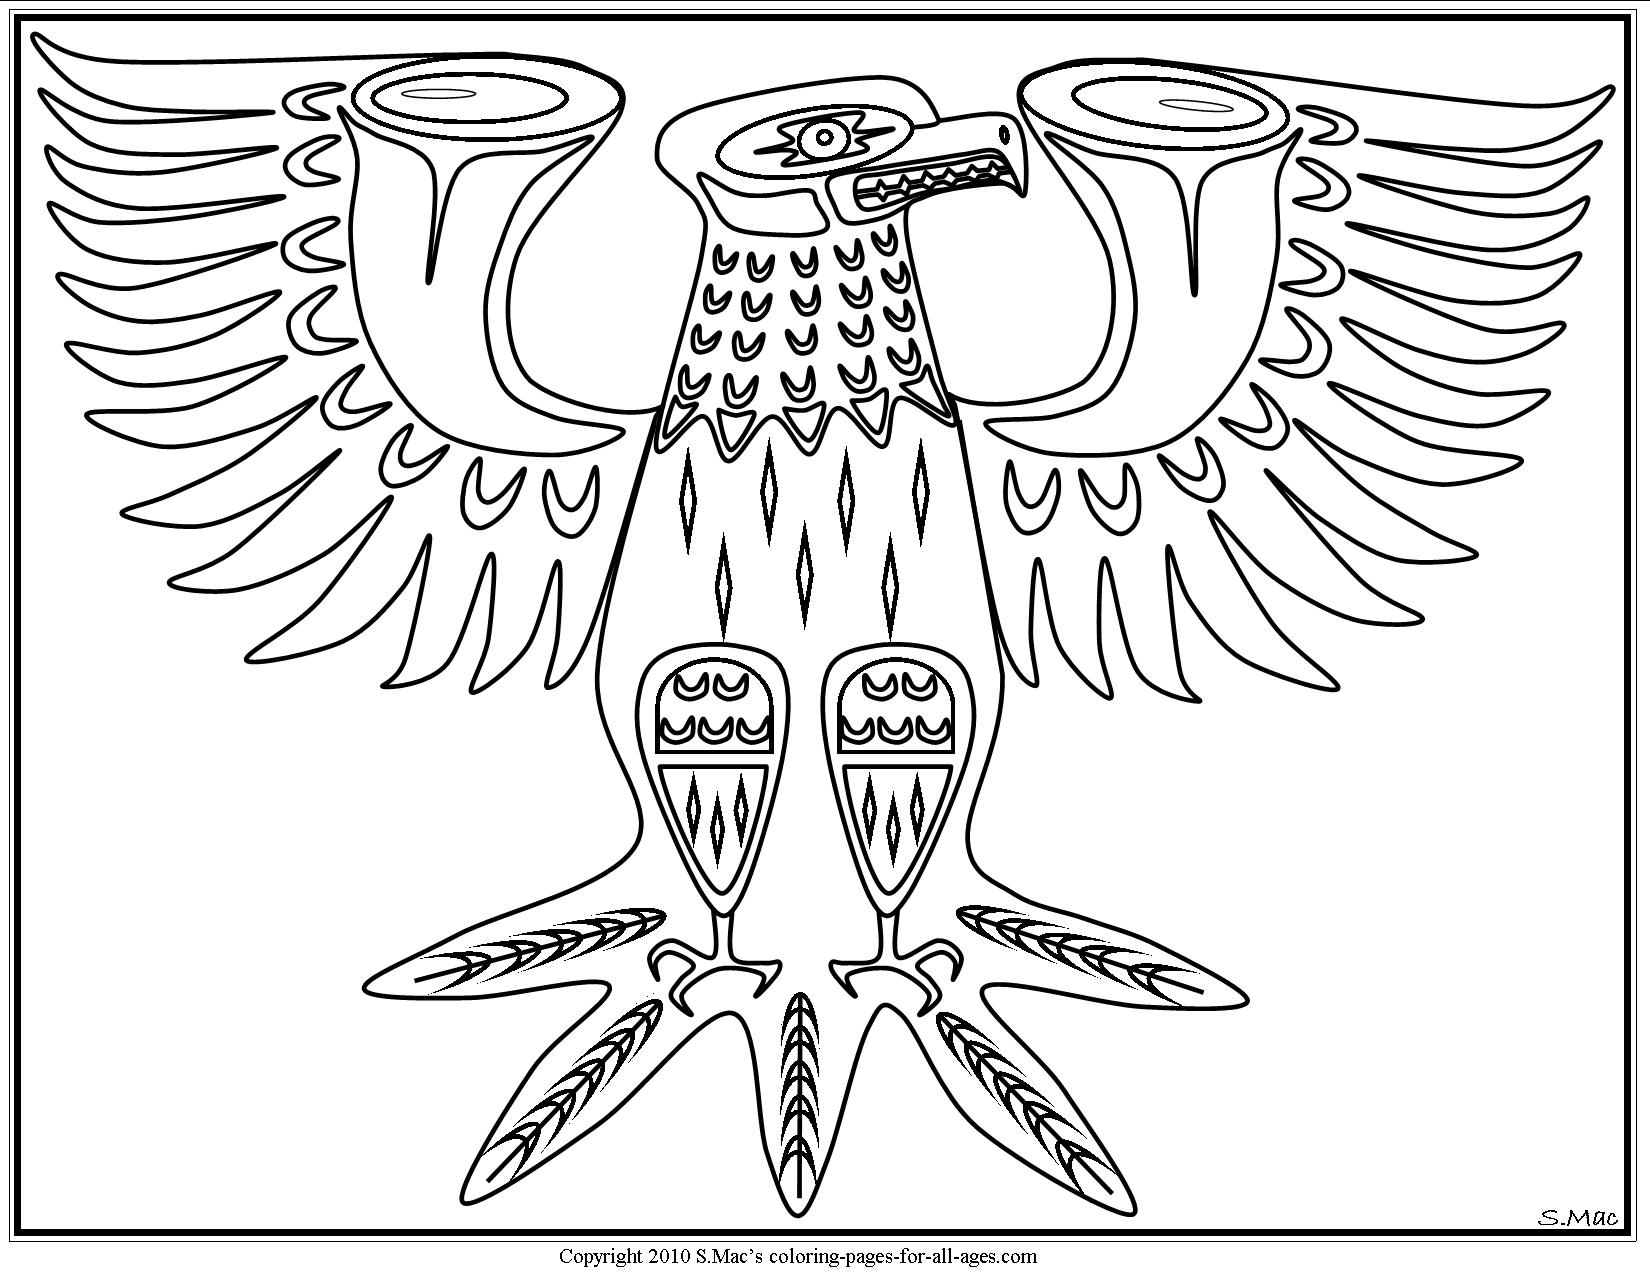 1650x1275 Printable Adult Native American Symbols Coloring Pages Adult